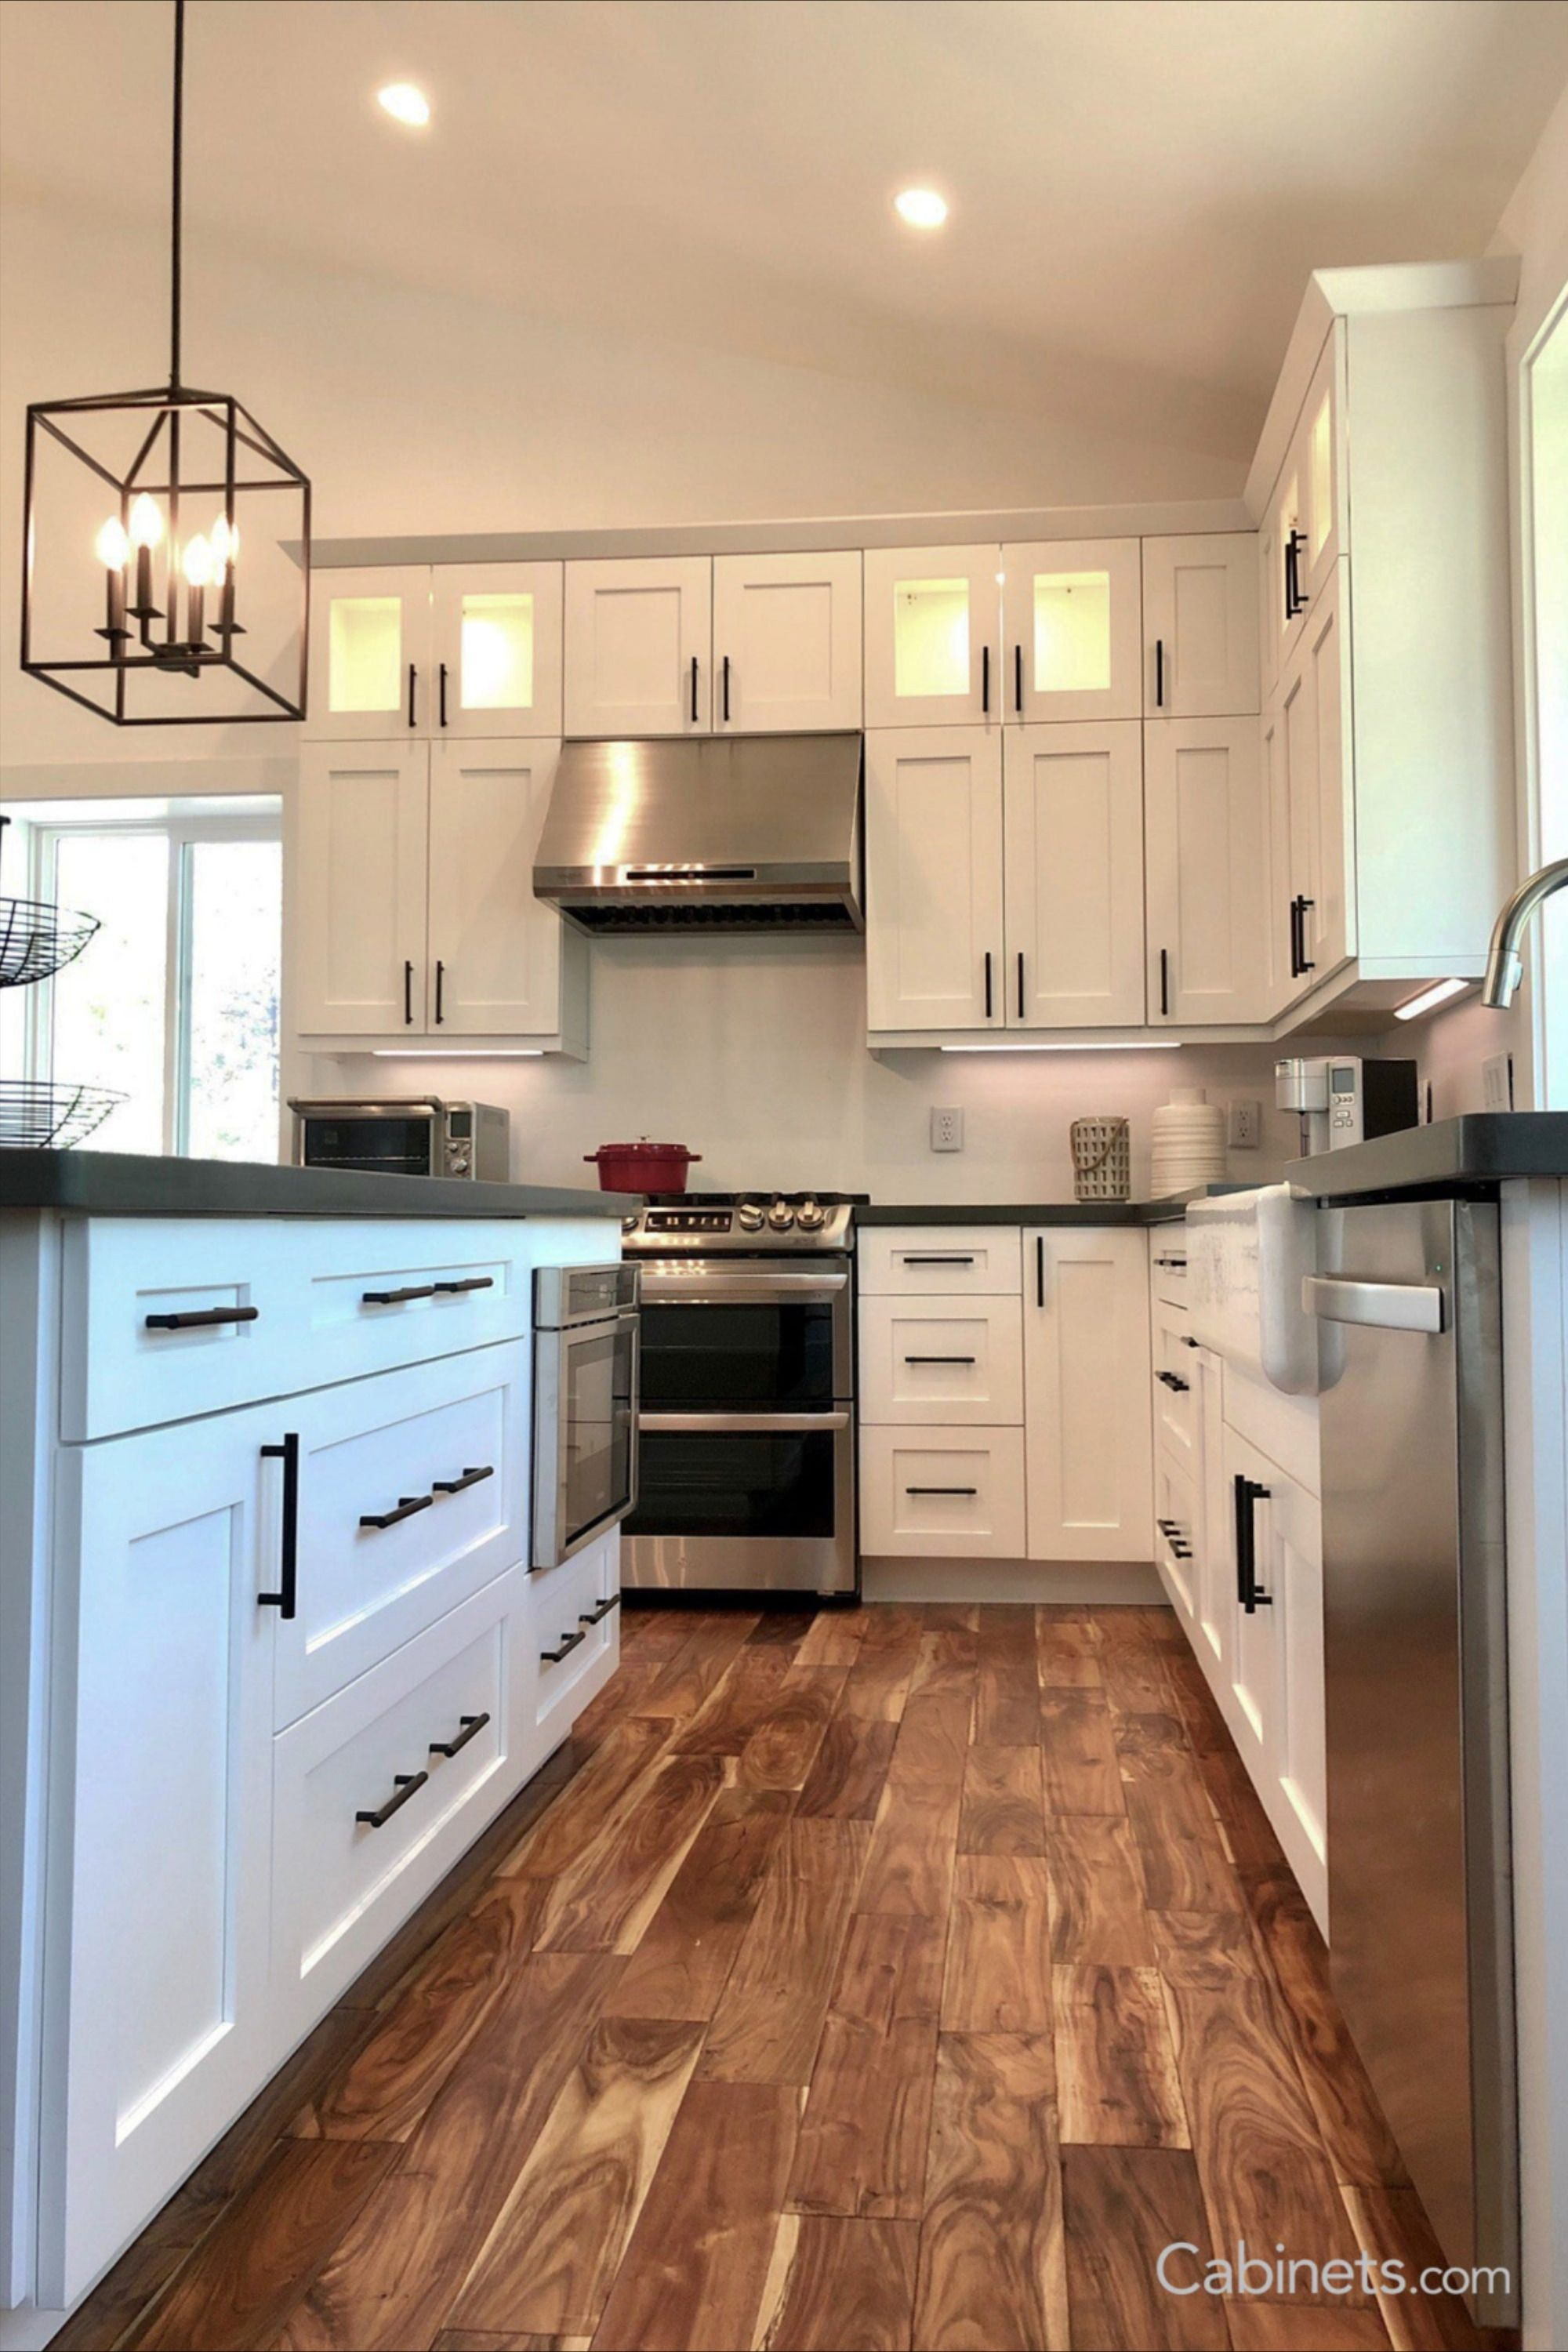 Adding Warmth To A White Kitchen In 2020 White Shaker Kitchen Cabinets White Kitchen Design White Shaker Kitchen